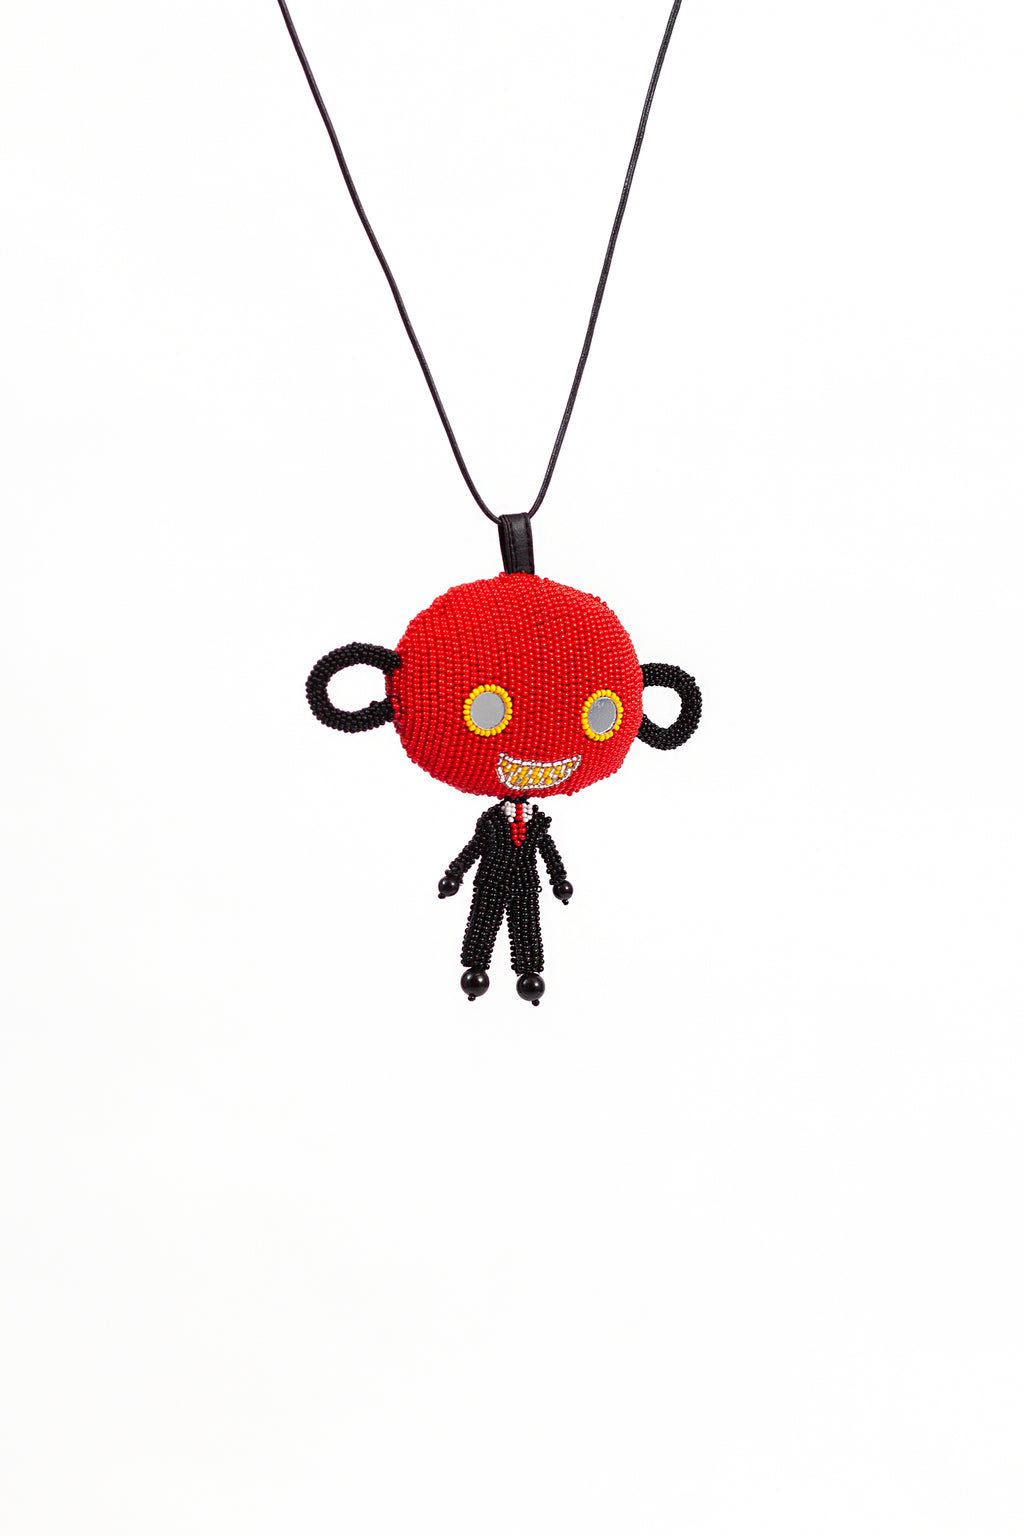 Skattebol Necklace - Red